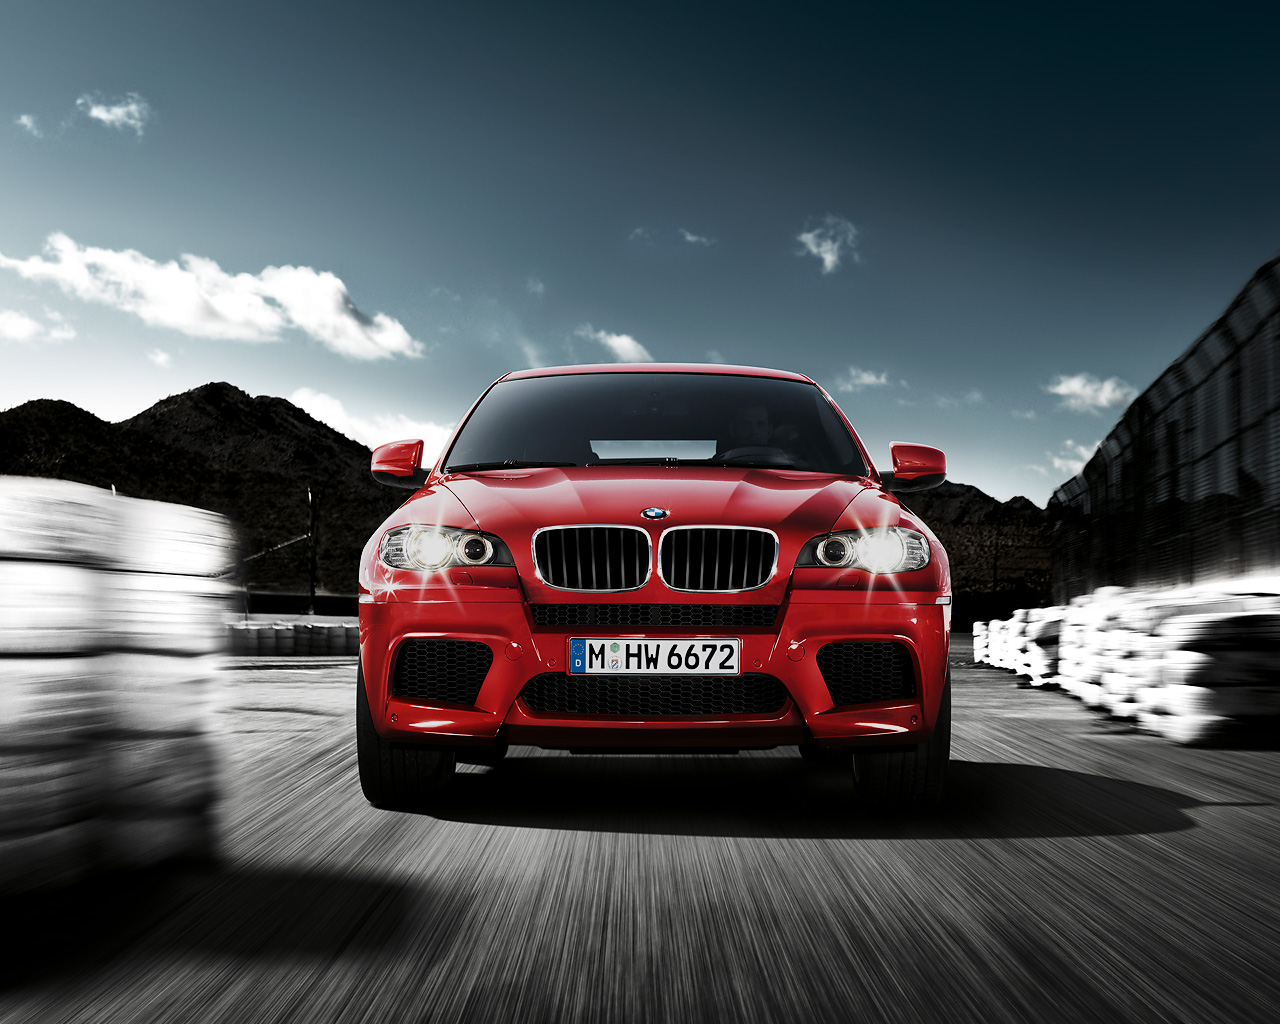 Wallpapers Bmw X6 M And Bmw X5 M